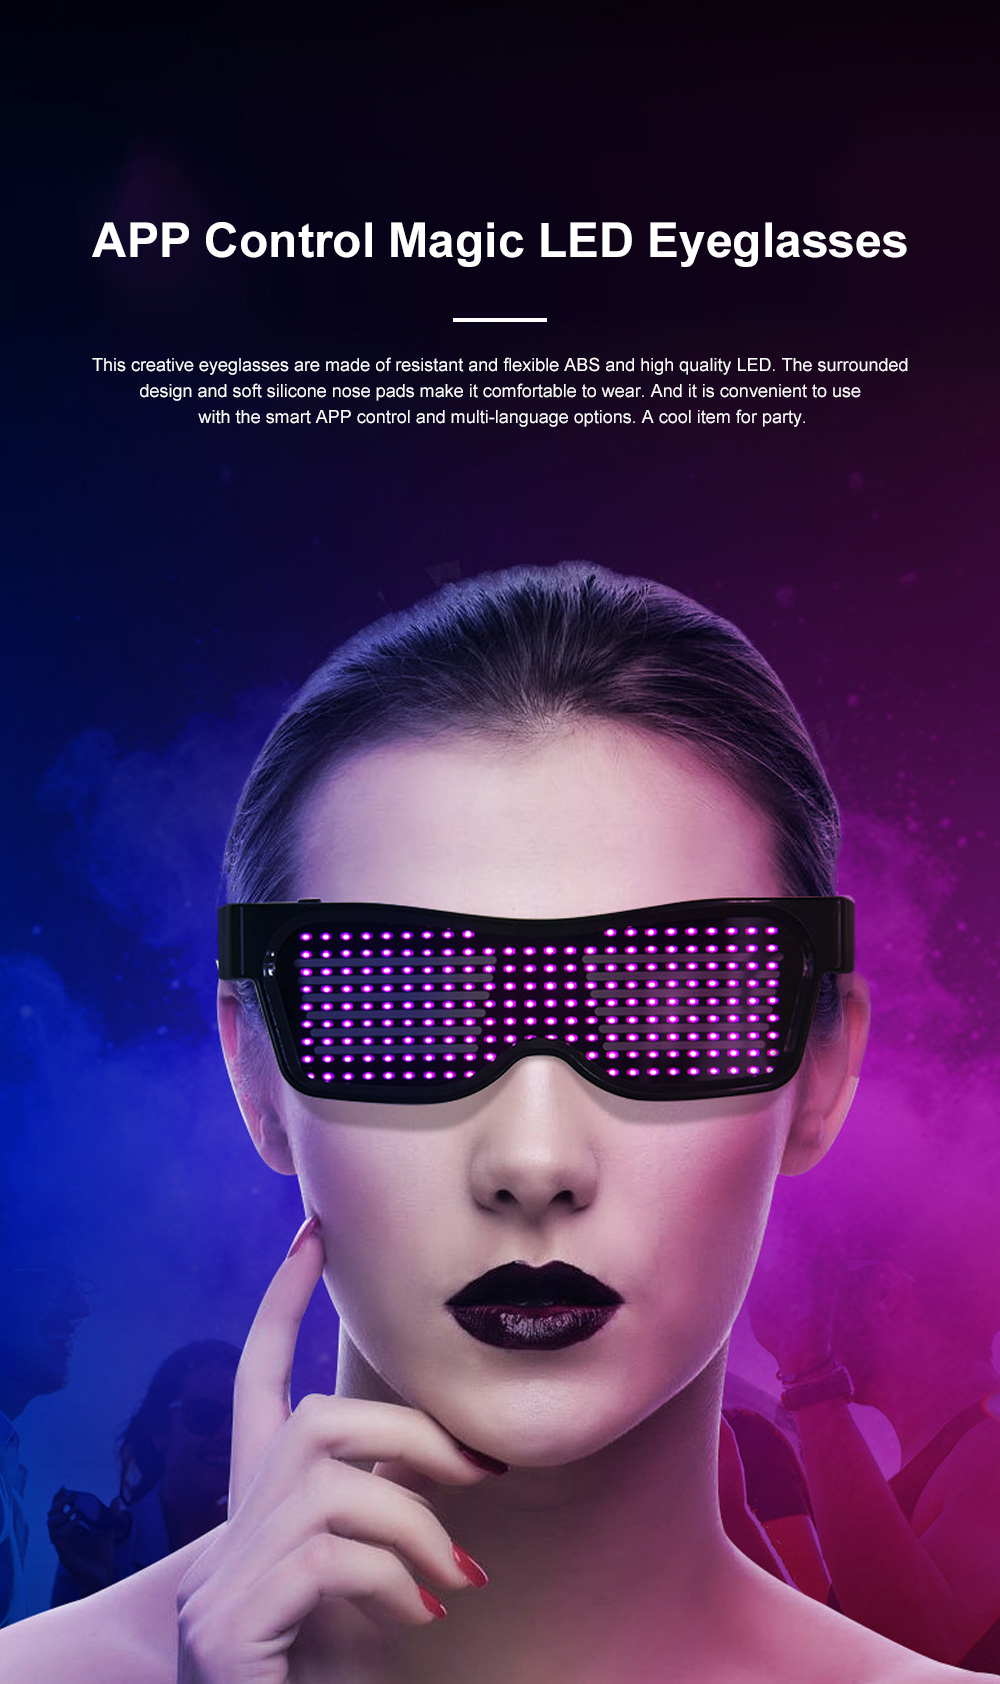 Magic LED Eyeglasses Bluetooth APP Control Luminous Glasses with Silicone Nose Pads for Party Stage Performance 0